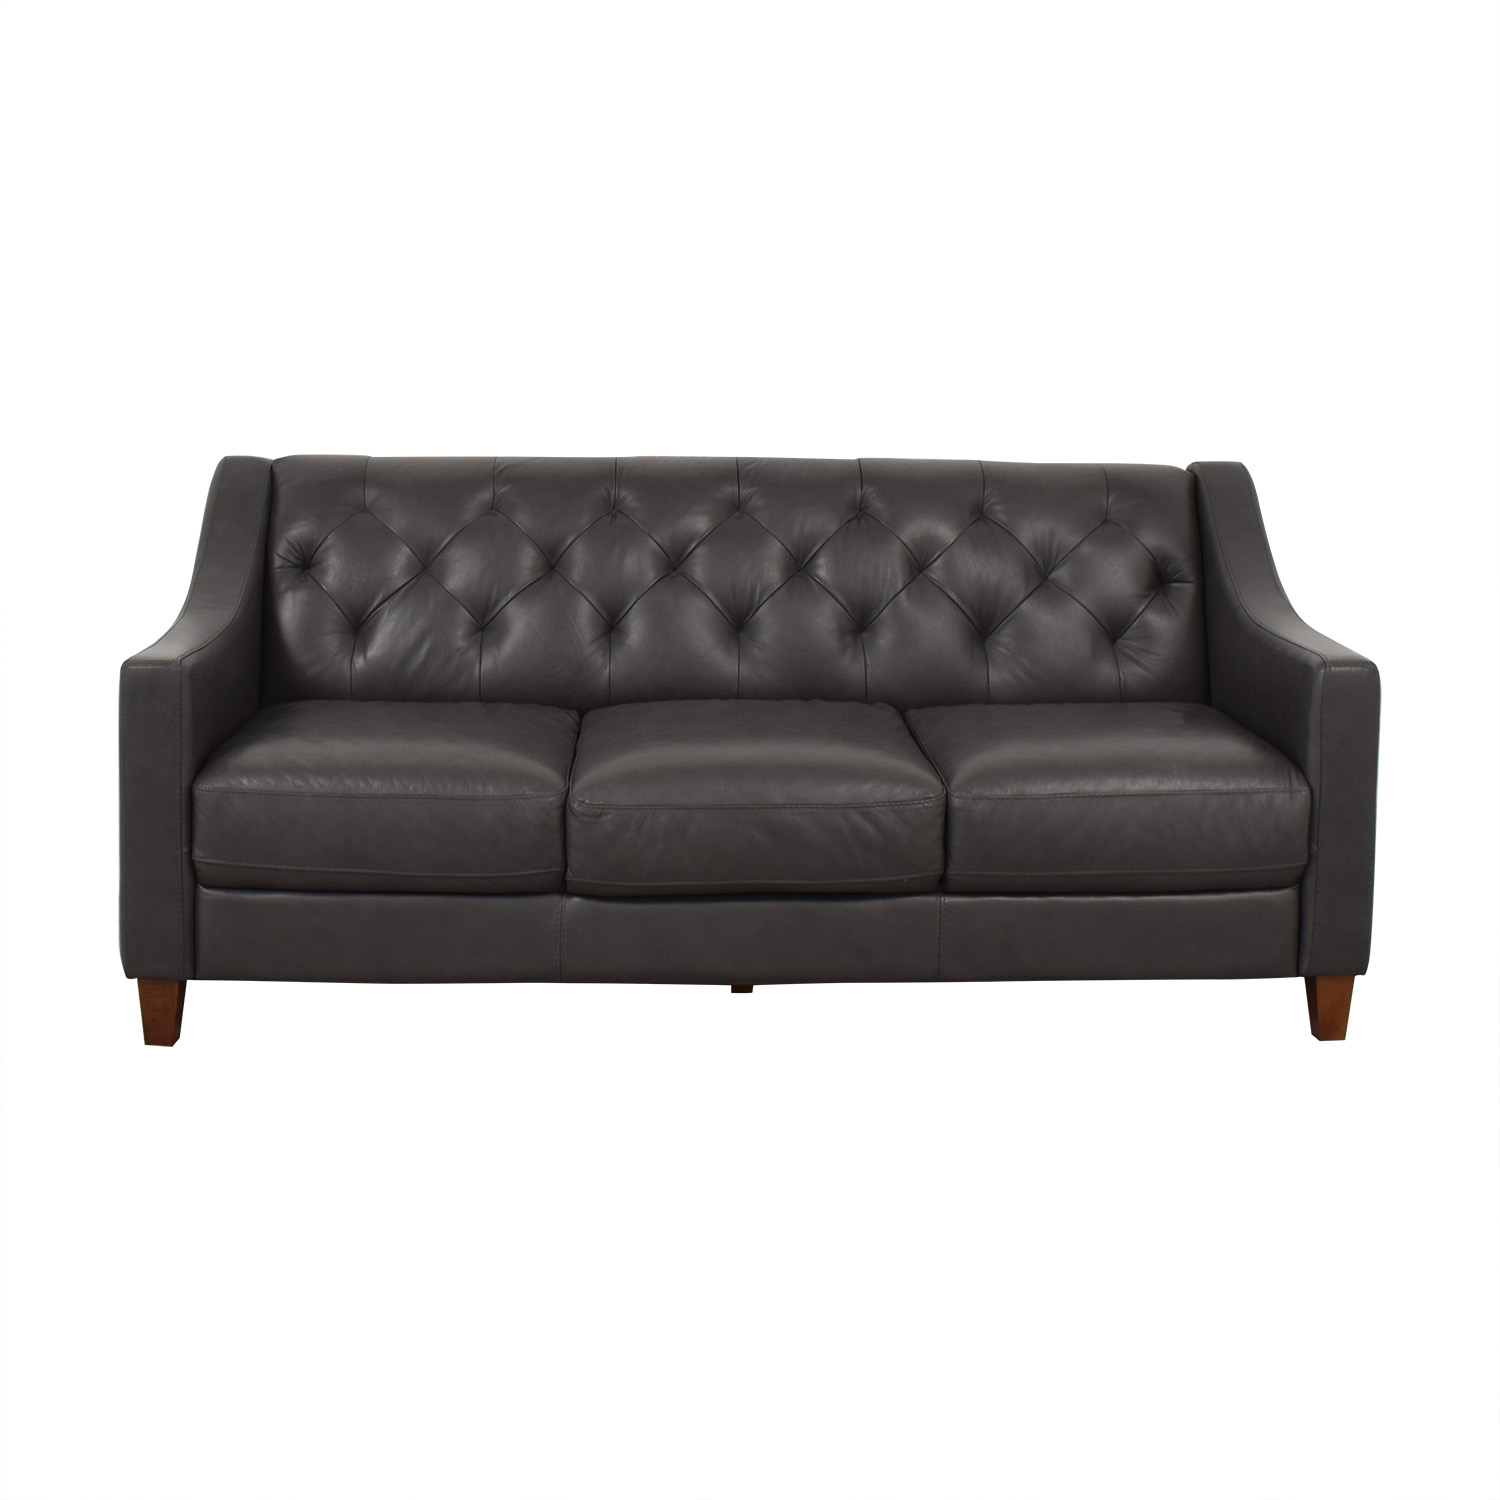 Chateau d'Ax Tufted Leather Sofa / Sofas